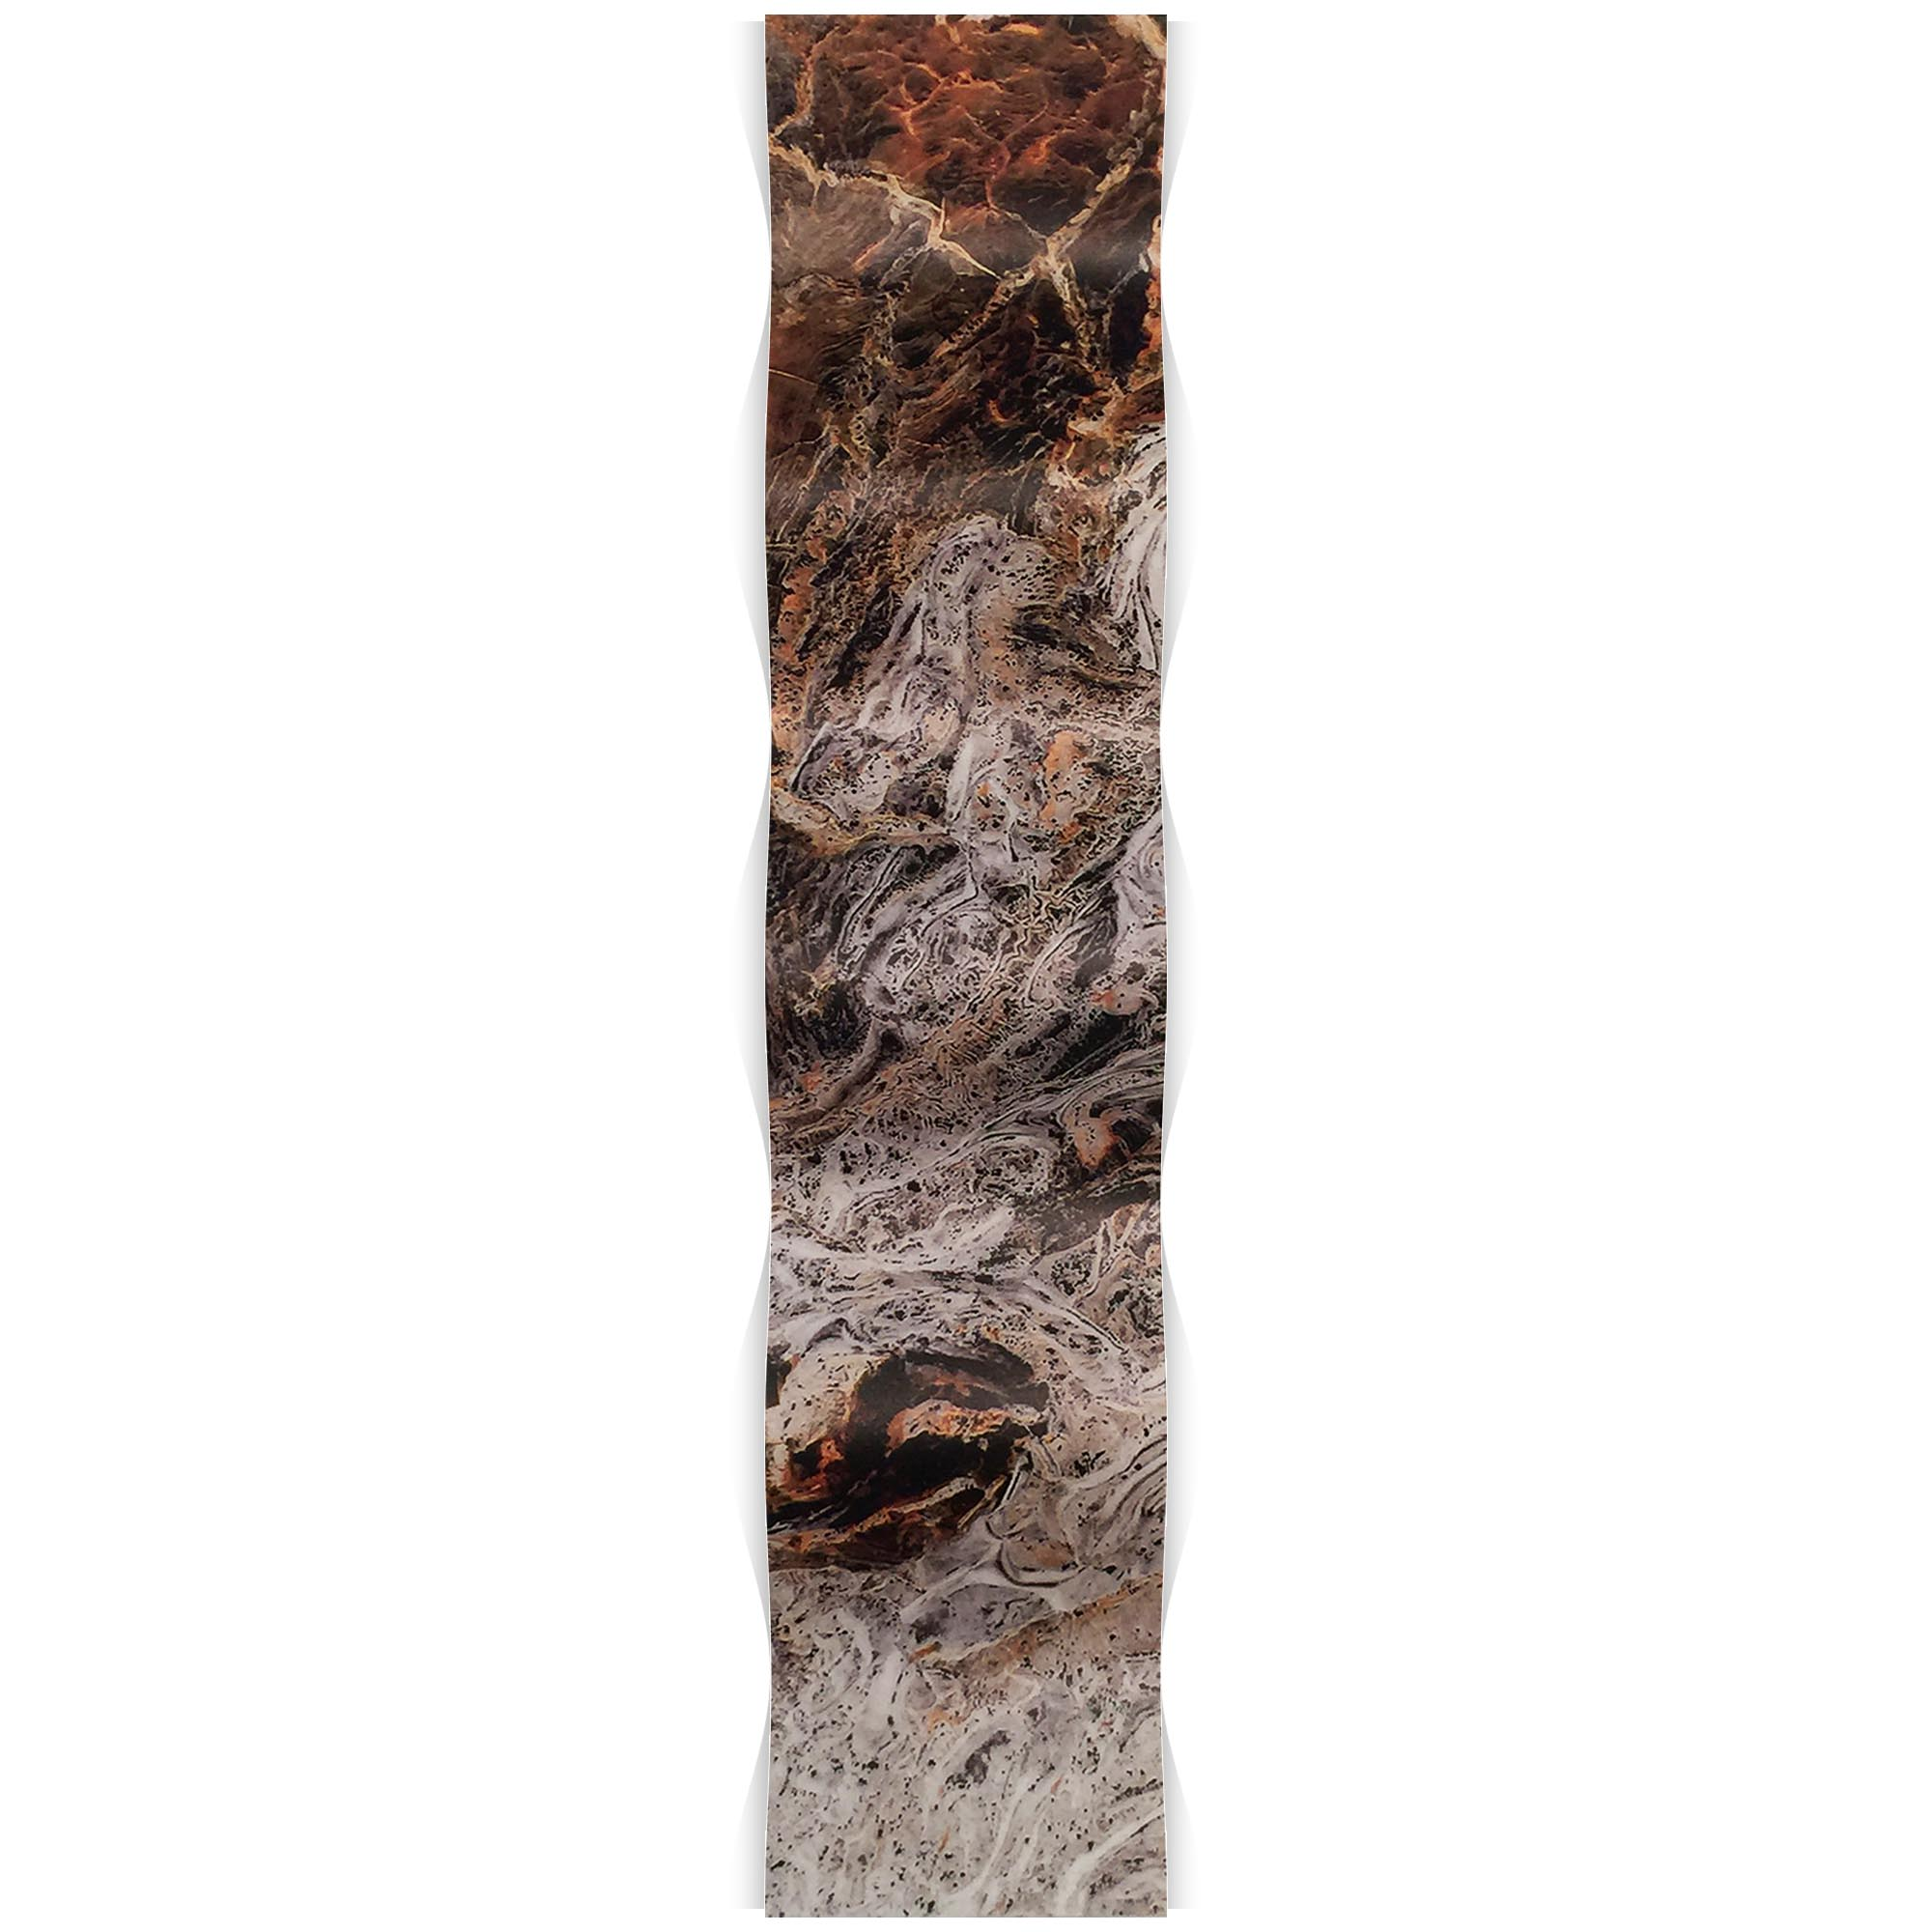 Storm Brown Wave 9.5x44in. Metal Eclectic Decor - Image 2